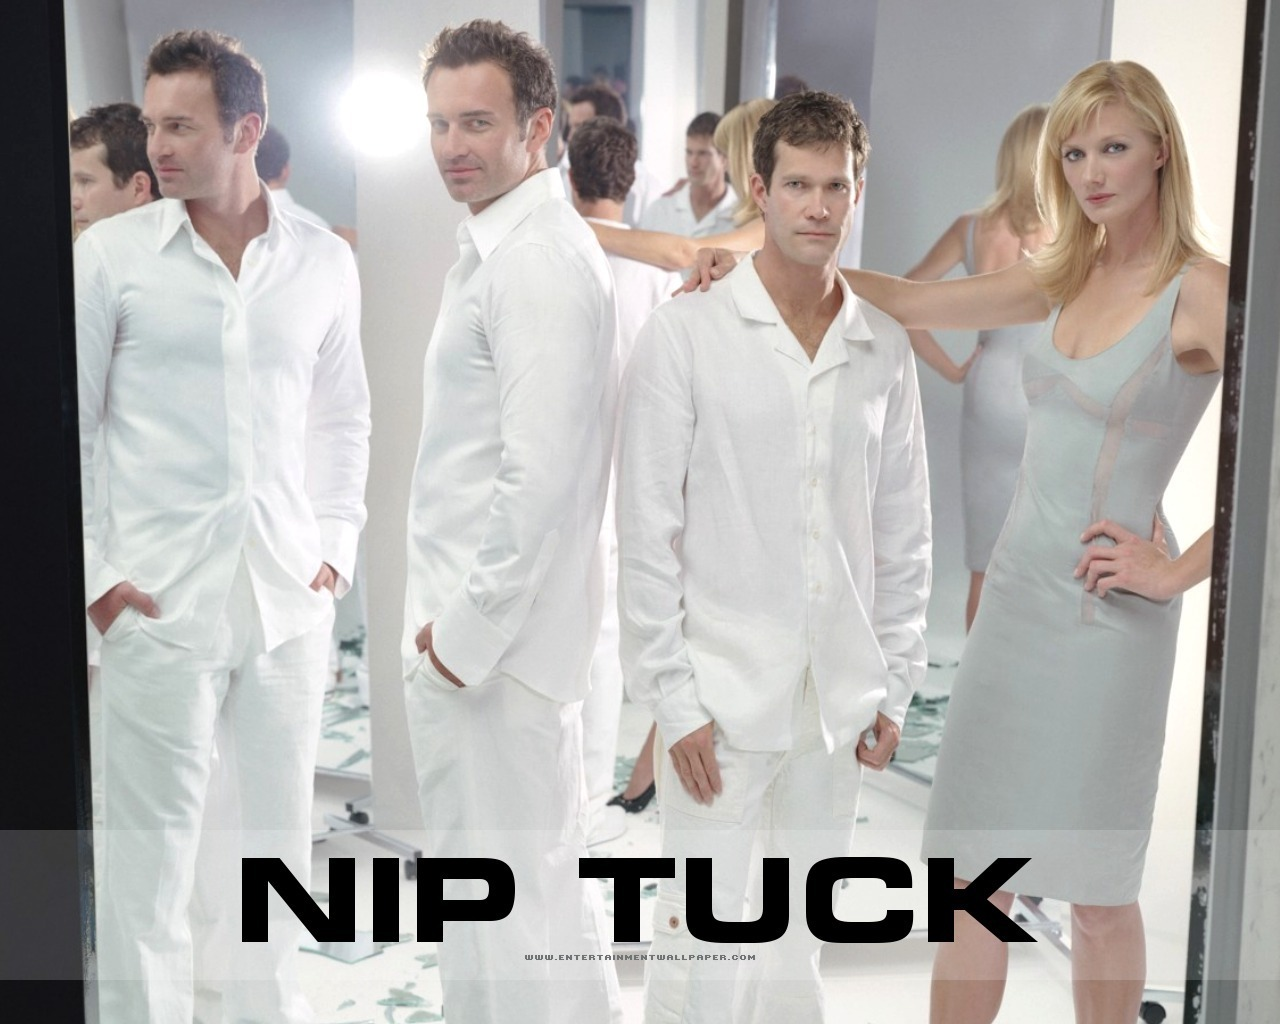 nip tuck Nipandtuck florist 611 likes 1 talking about this 15 were here retail florist weddings full services floral design free delivery in city limits.